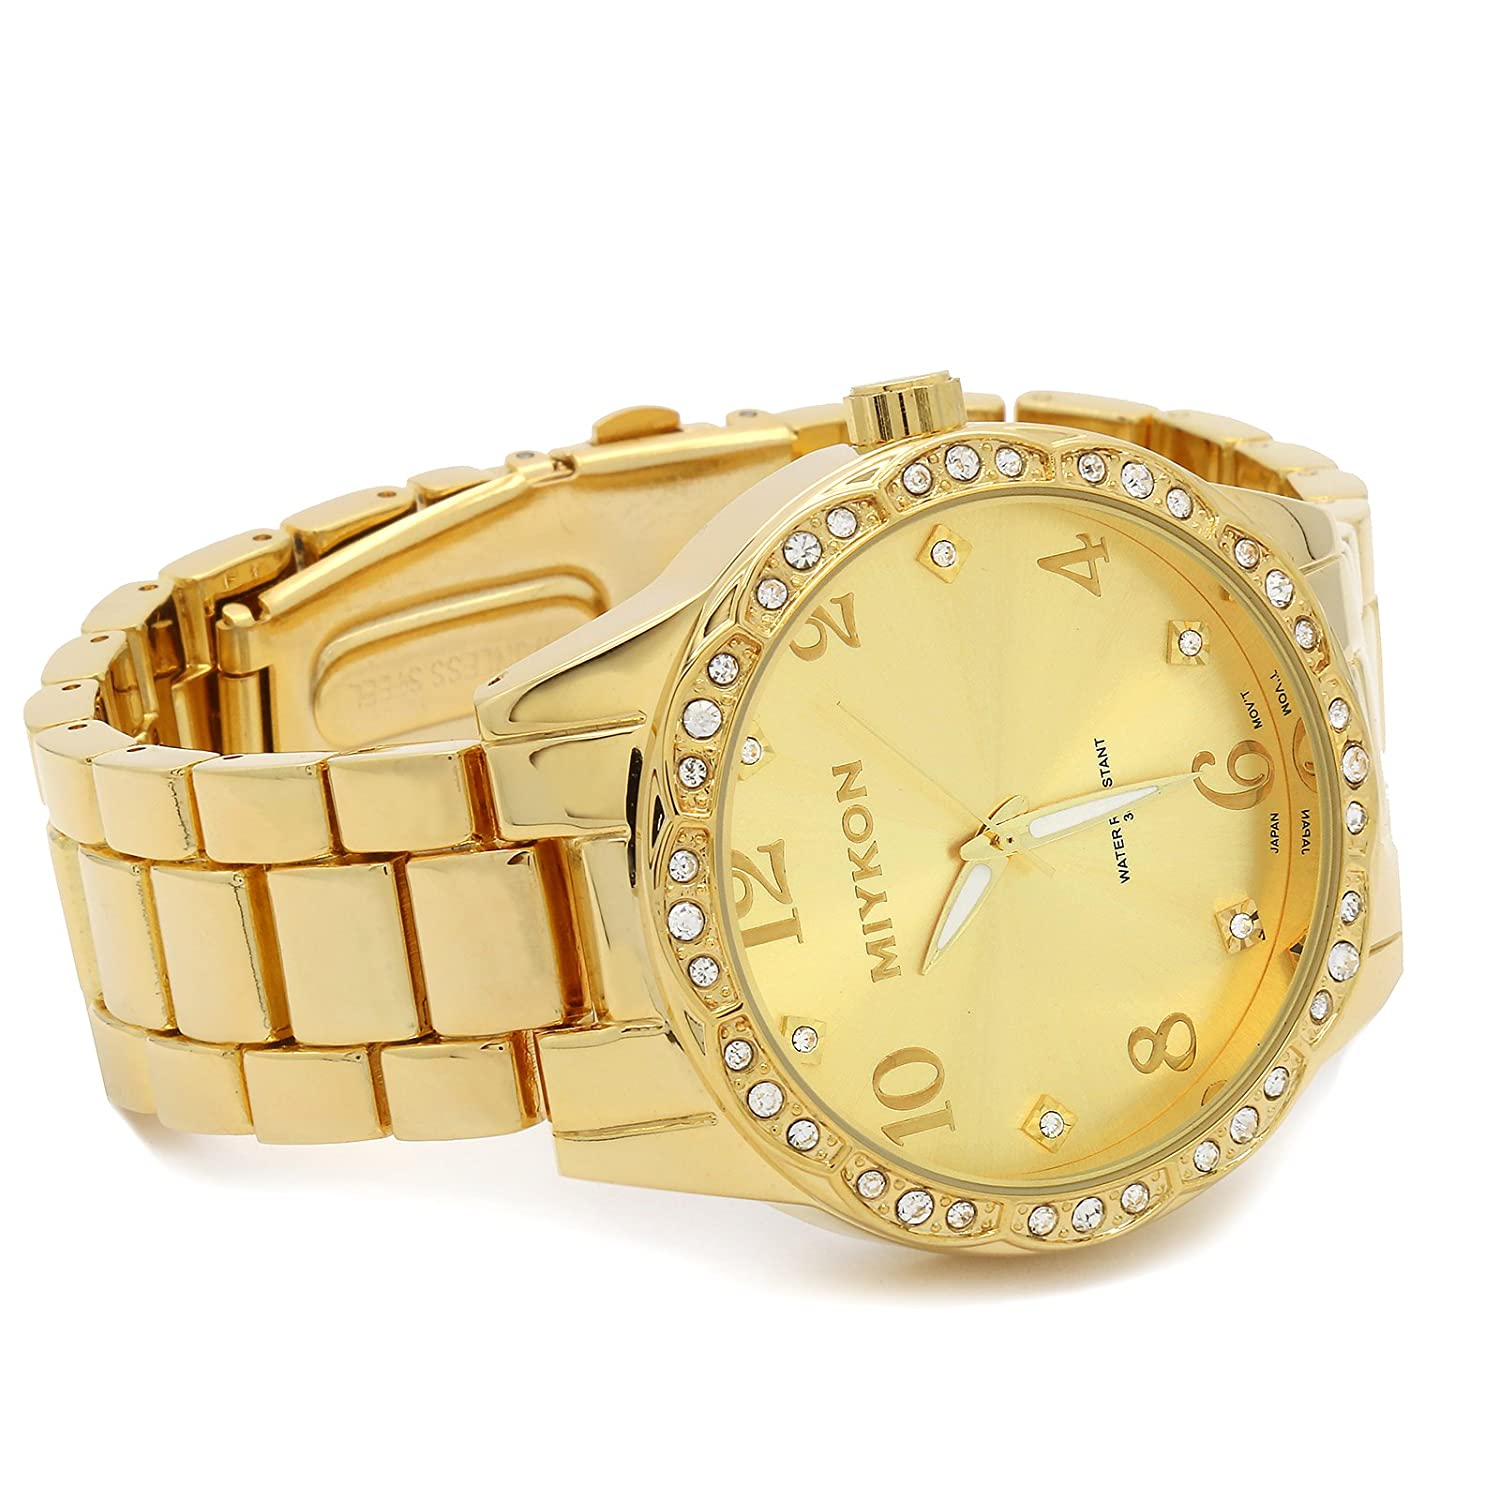 Amazon.com: Miykon Mens Gold Plated Metal Band Gold Face Fashion Casual Quartz Wrist watch Watches 3: Watches